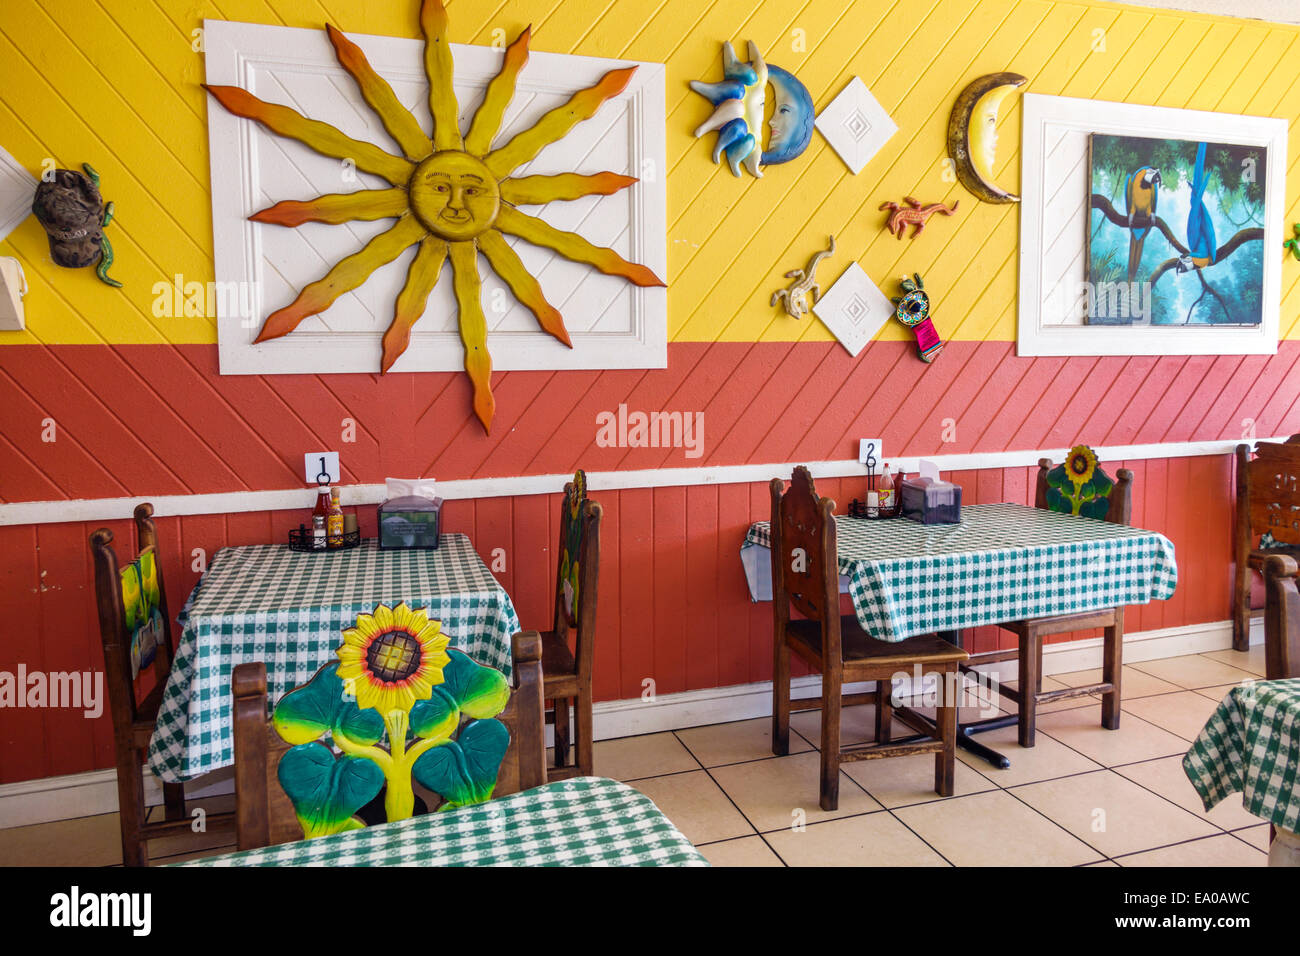 Florida Indiantown Cafe Los Amigos Mexicana Restaurant Mexican Inside  Interior Decor Tables Chairs